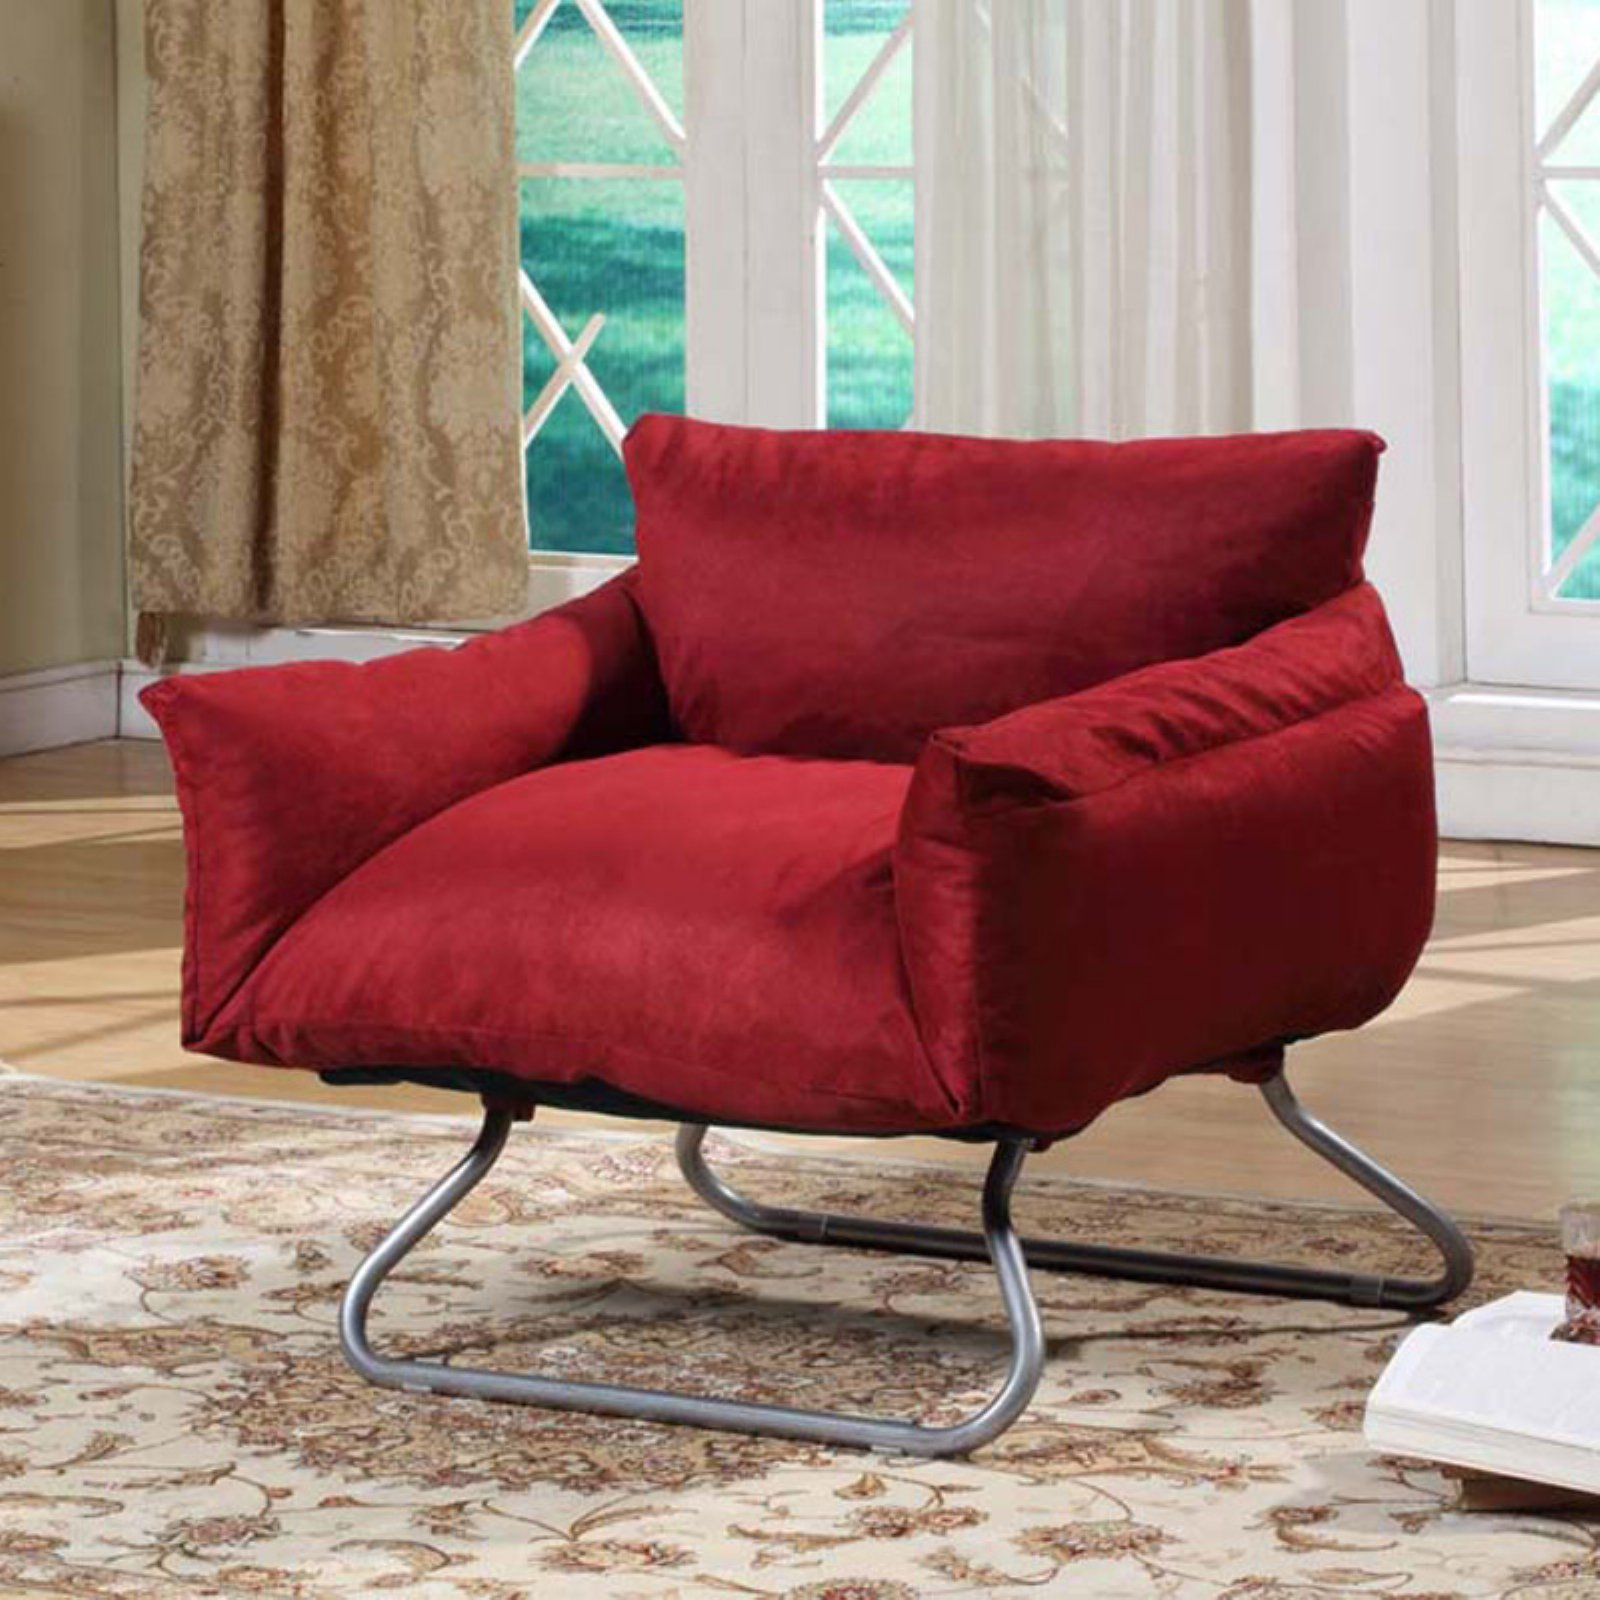 InRoom Designs Kids Red Chair Bed